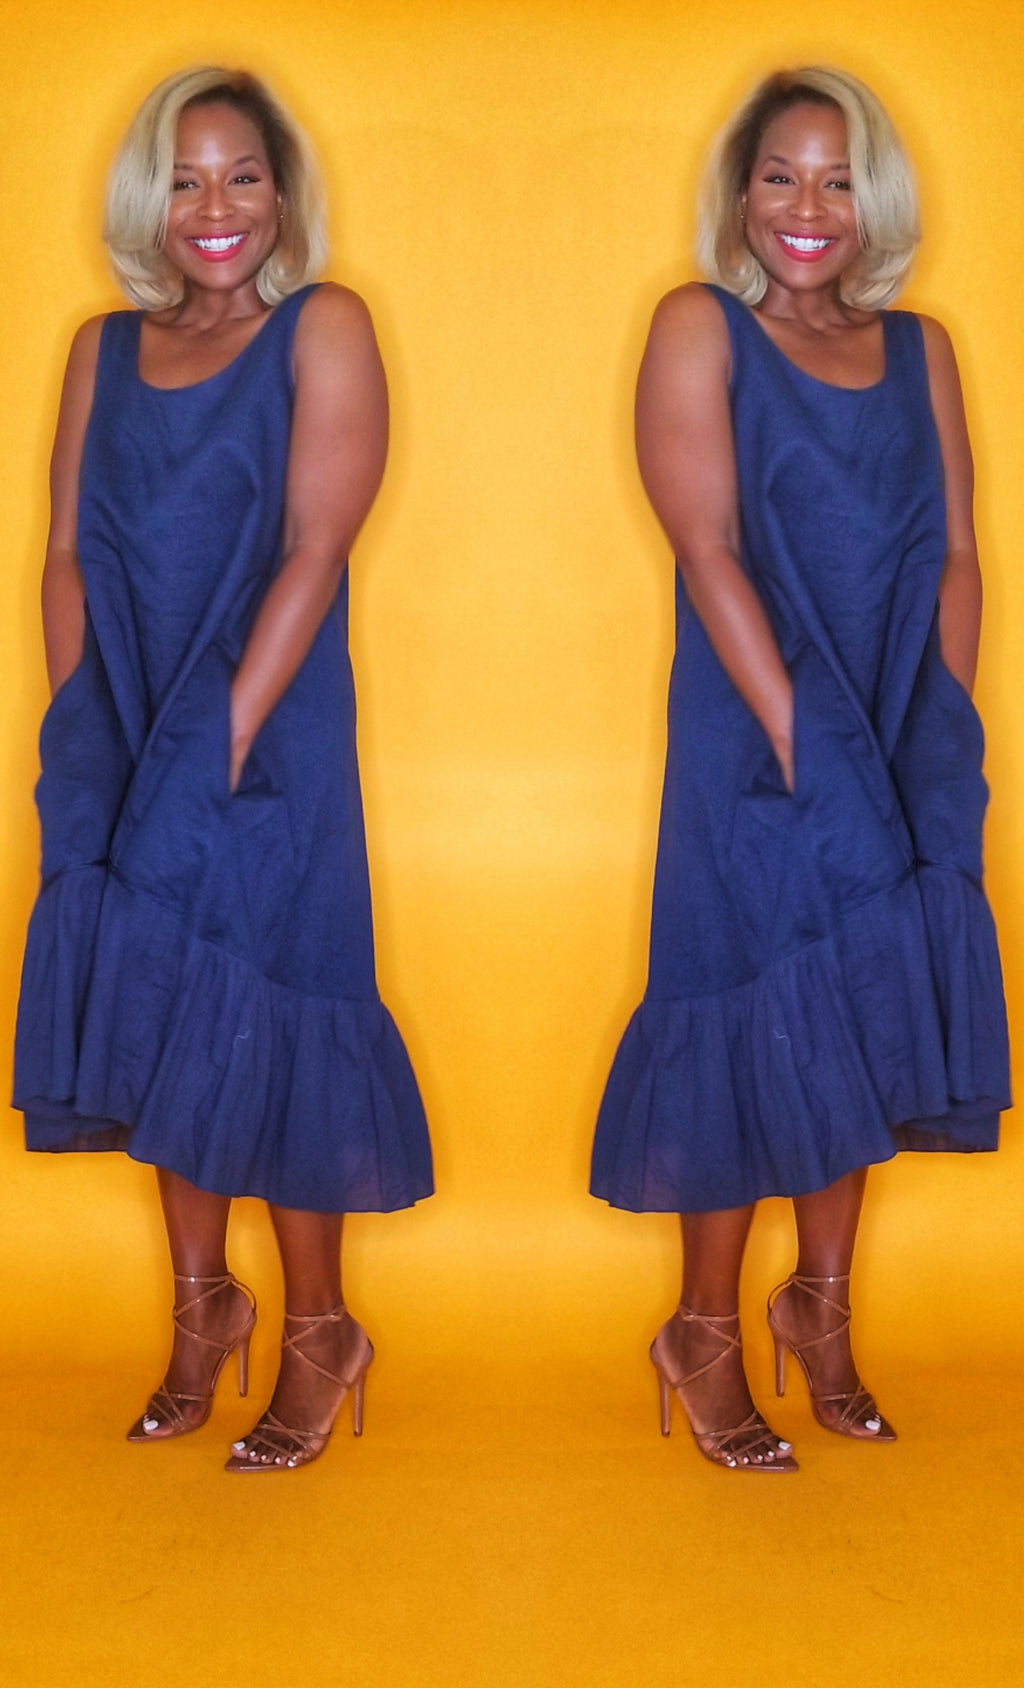 Blue linen dress perfect for warm weather on www.3DegreesRunway.com